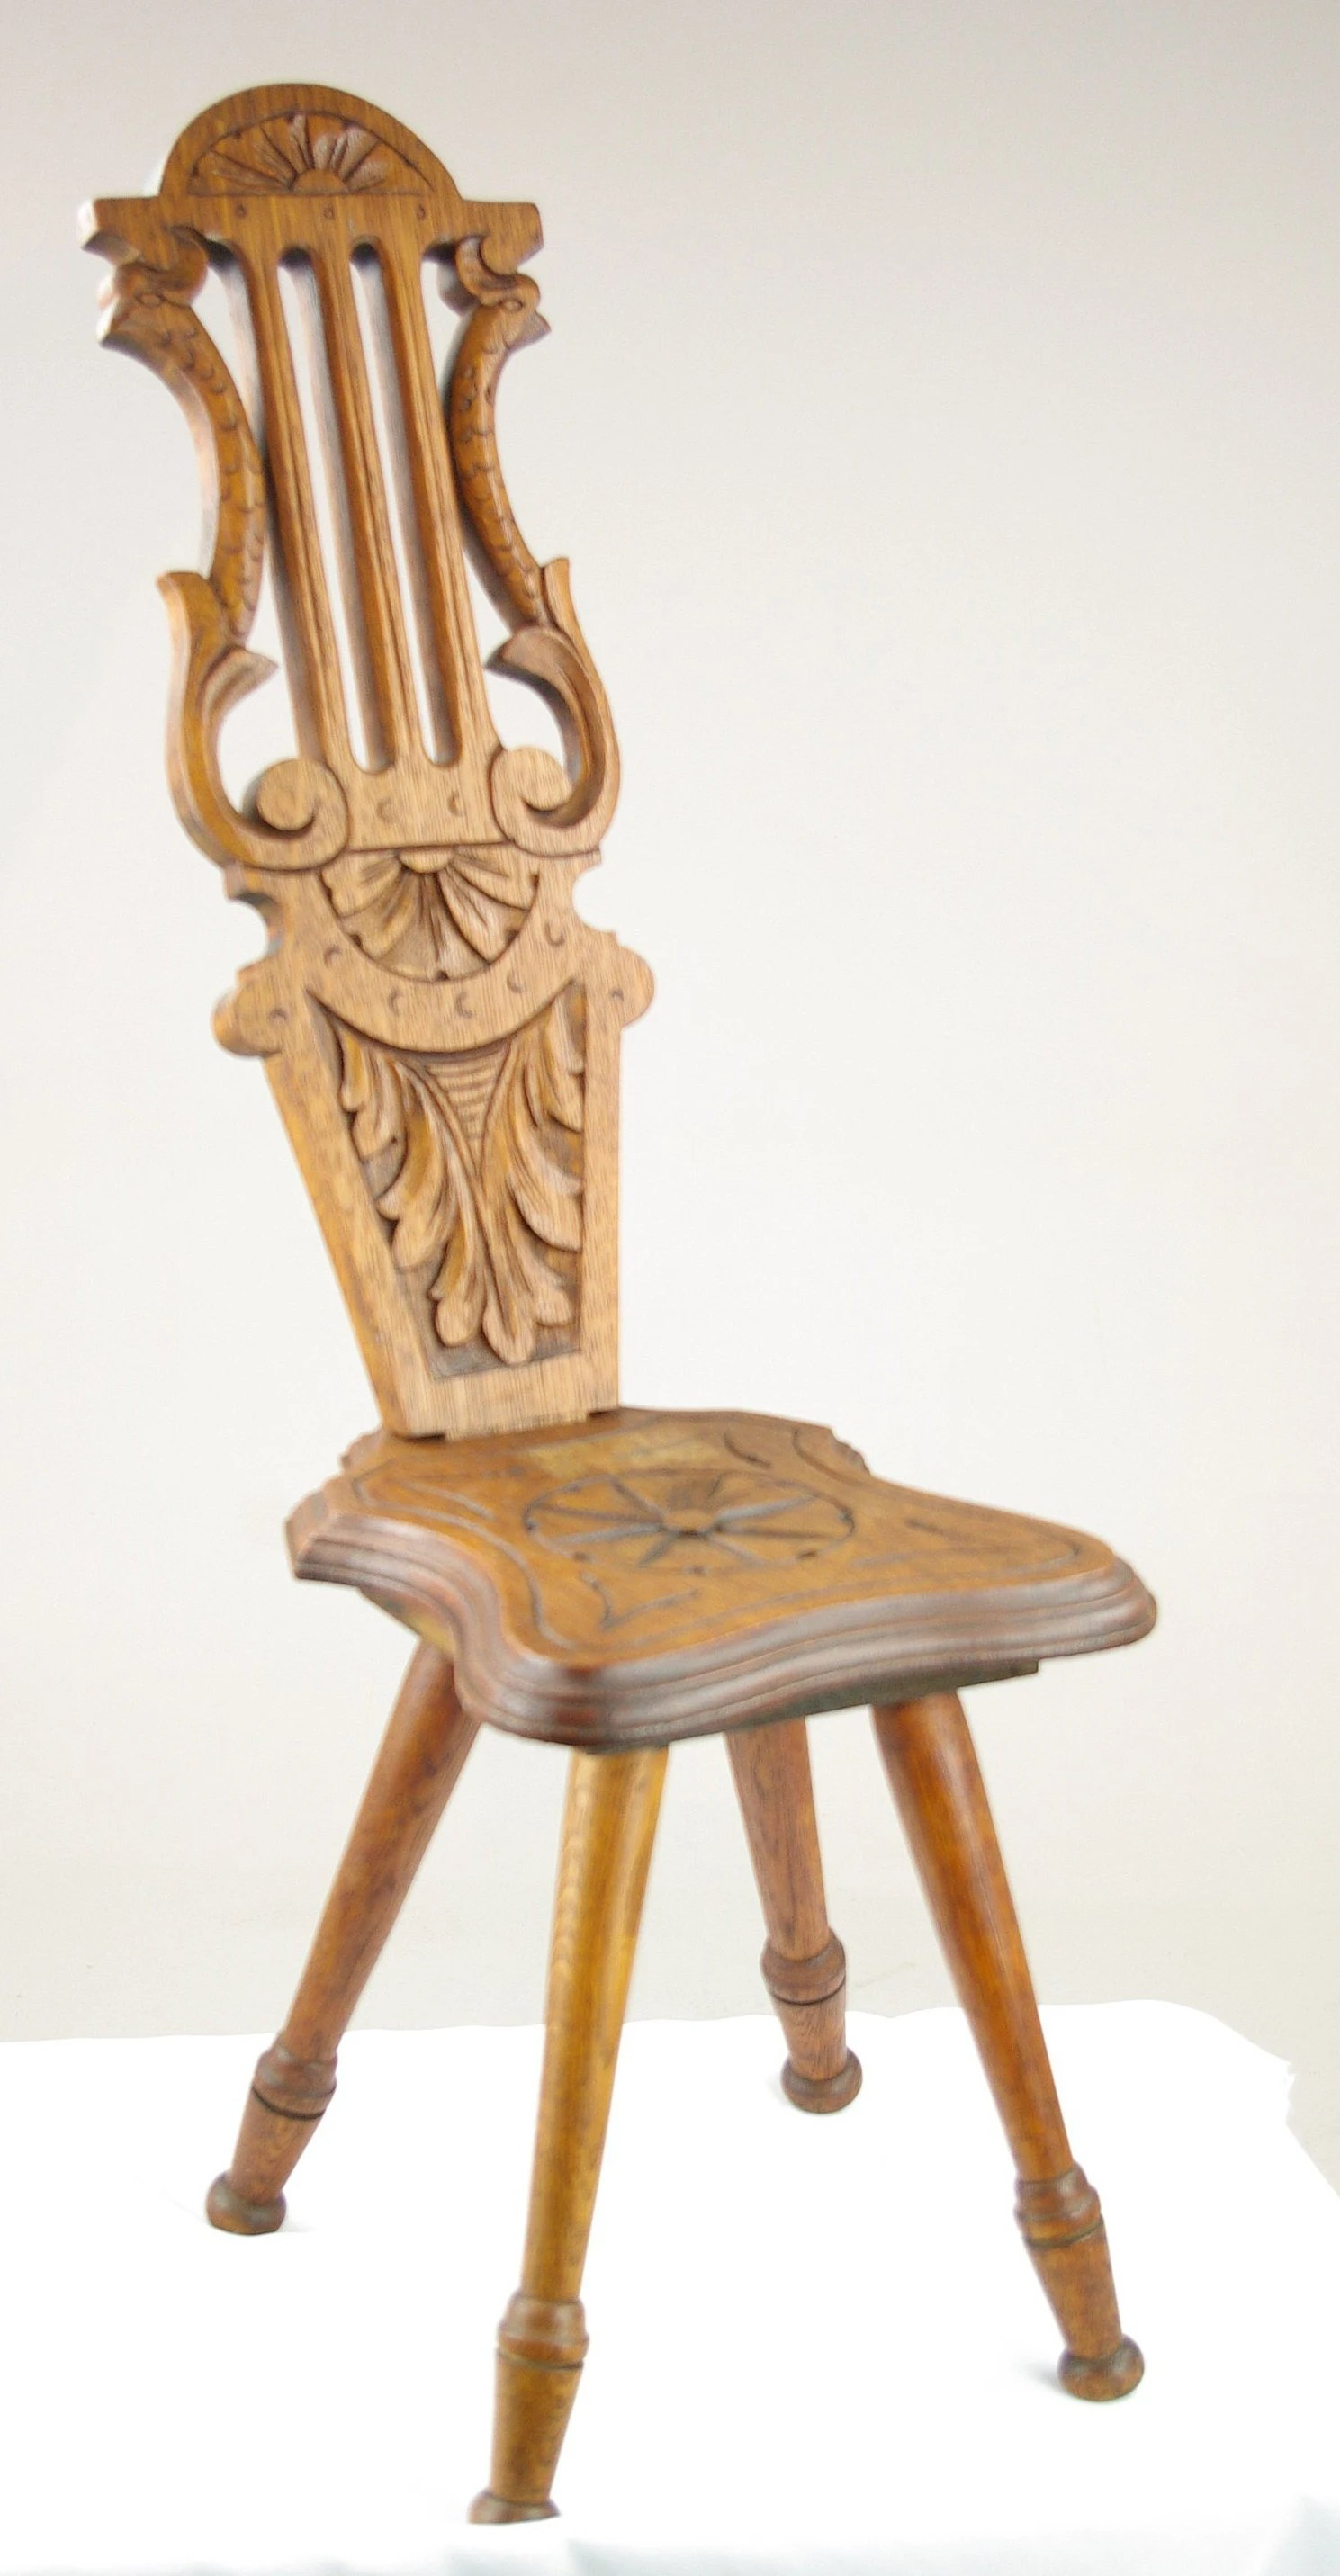 Spinning Chair Spinning Chair Antique Chair Carved Oak Chair Hall Chair Scotland 1880 Antique Furniture B1318